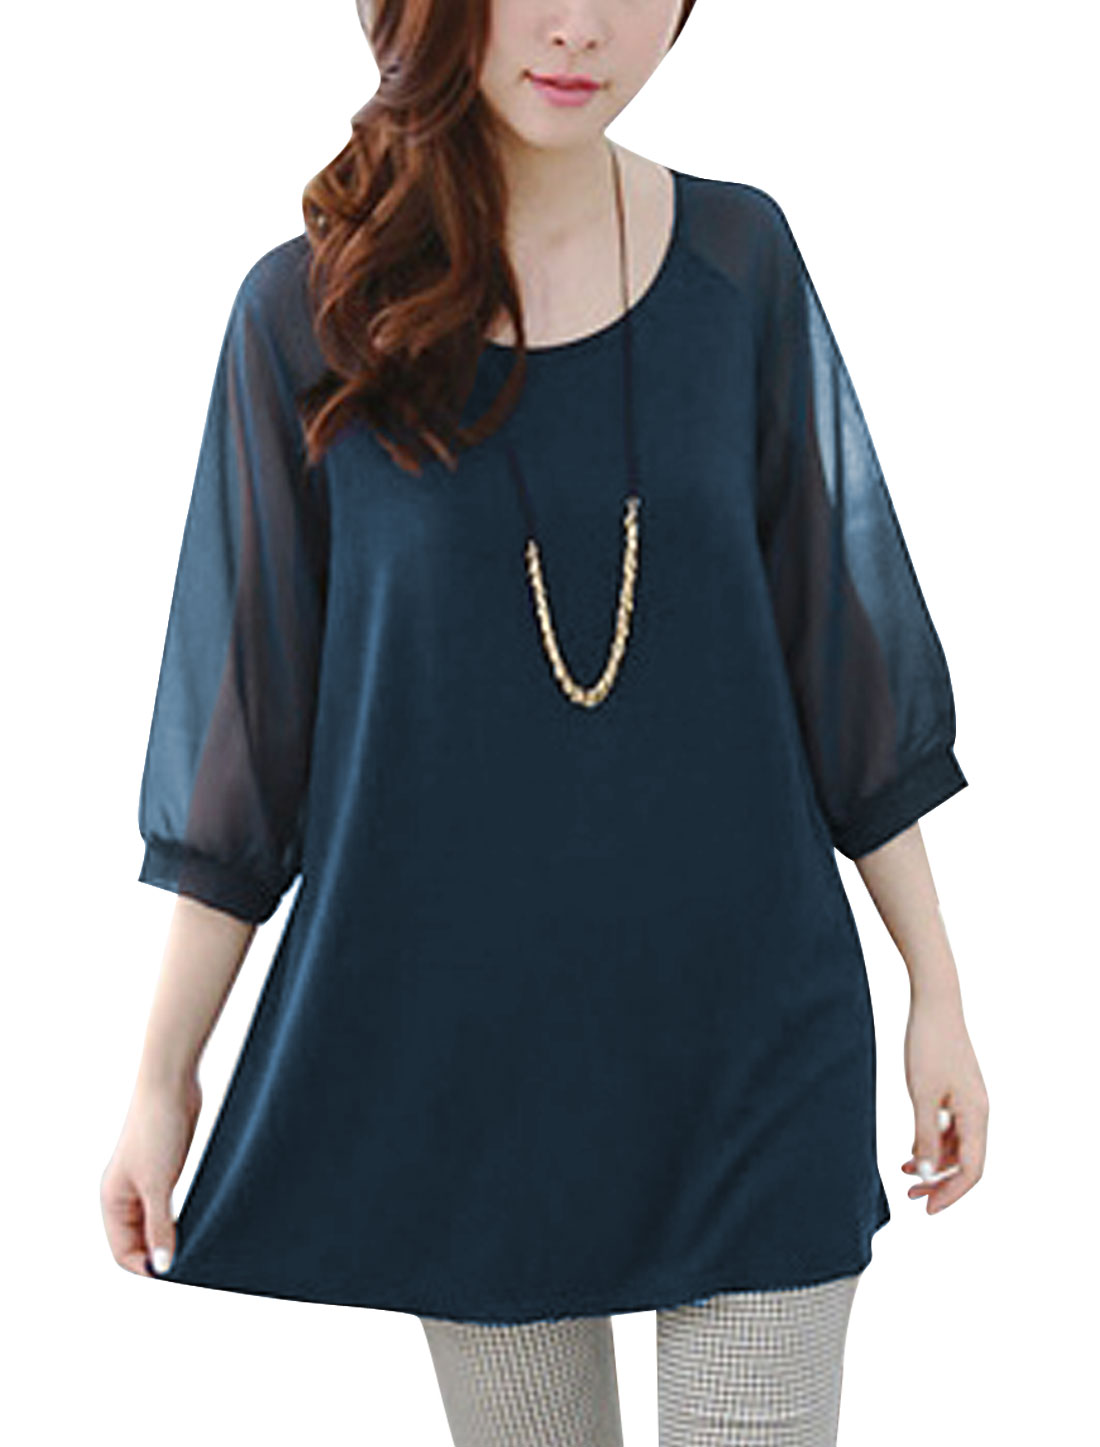 Women 3/4 Sleeve Chiffon Panel Round Neck Top Navy Blue S